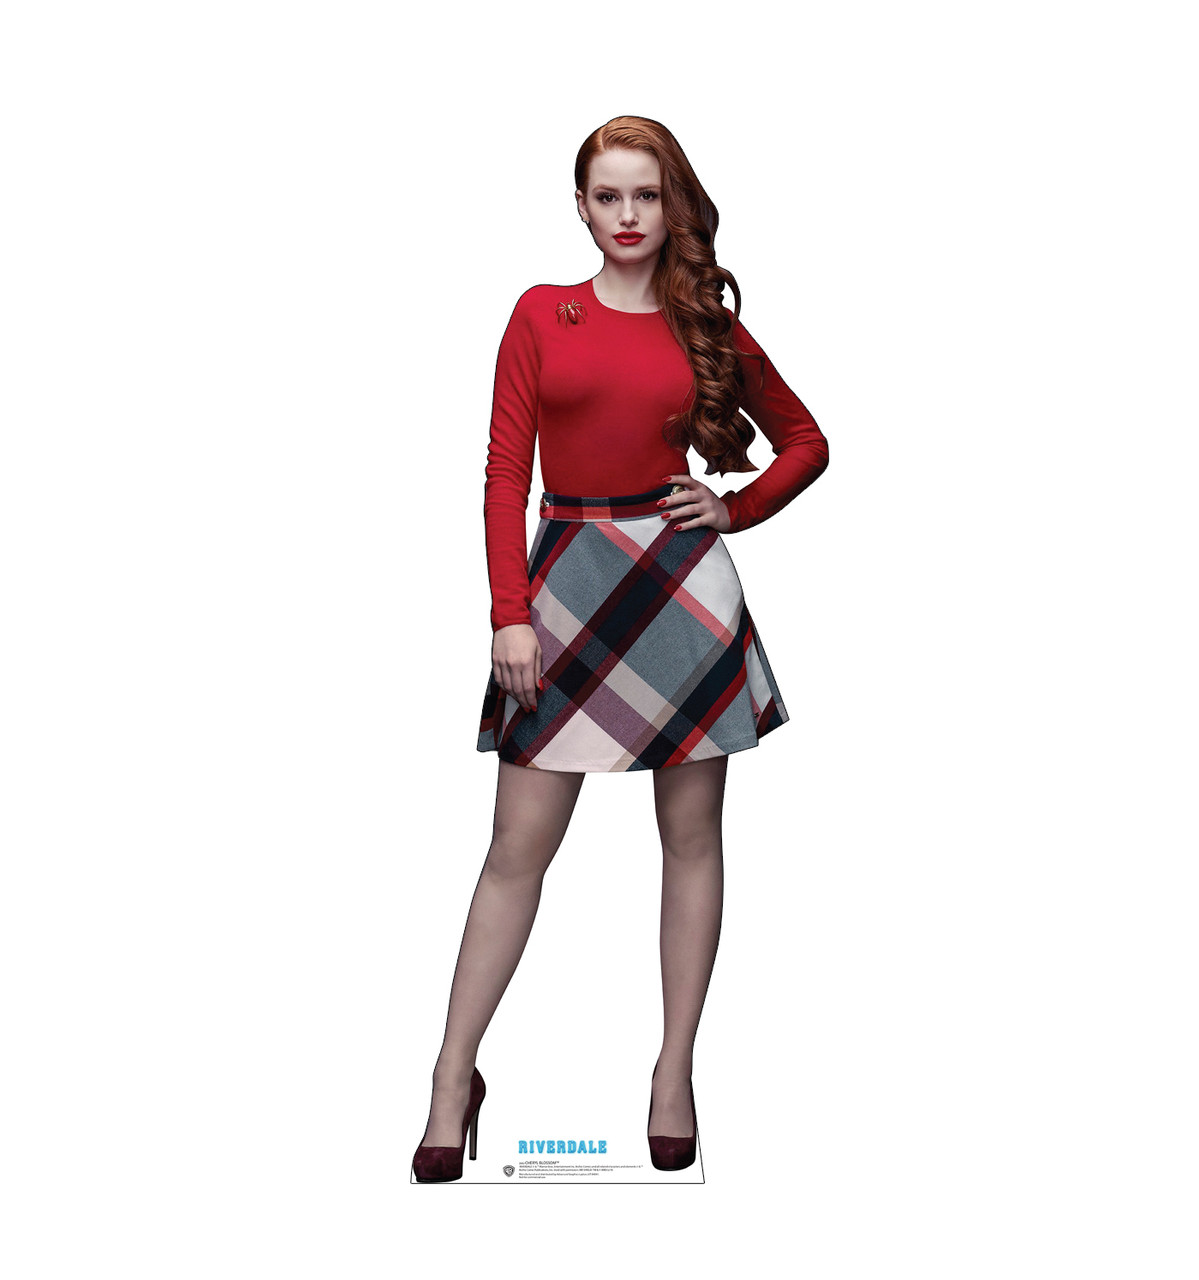 Life-size cardboard standee of Cheryl Blossom from the TV Series Riverdale.